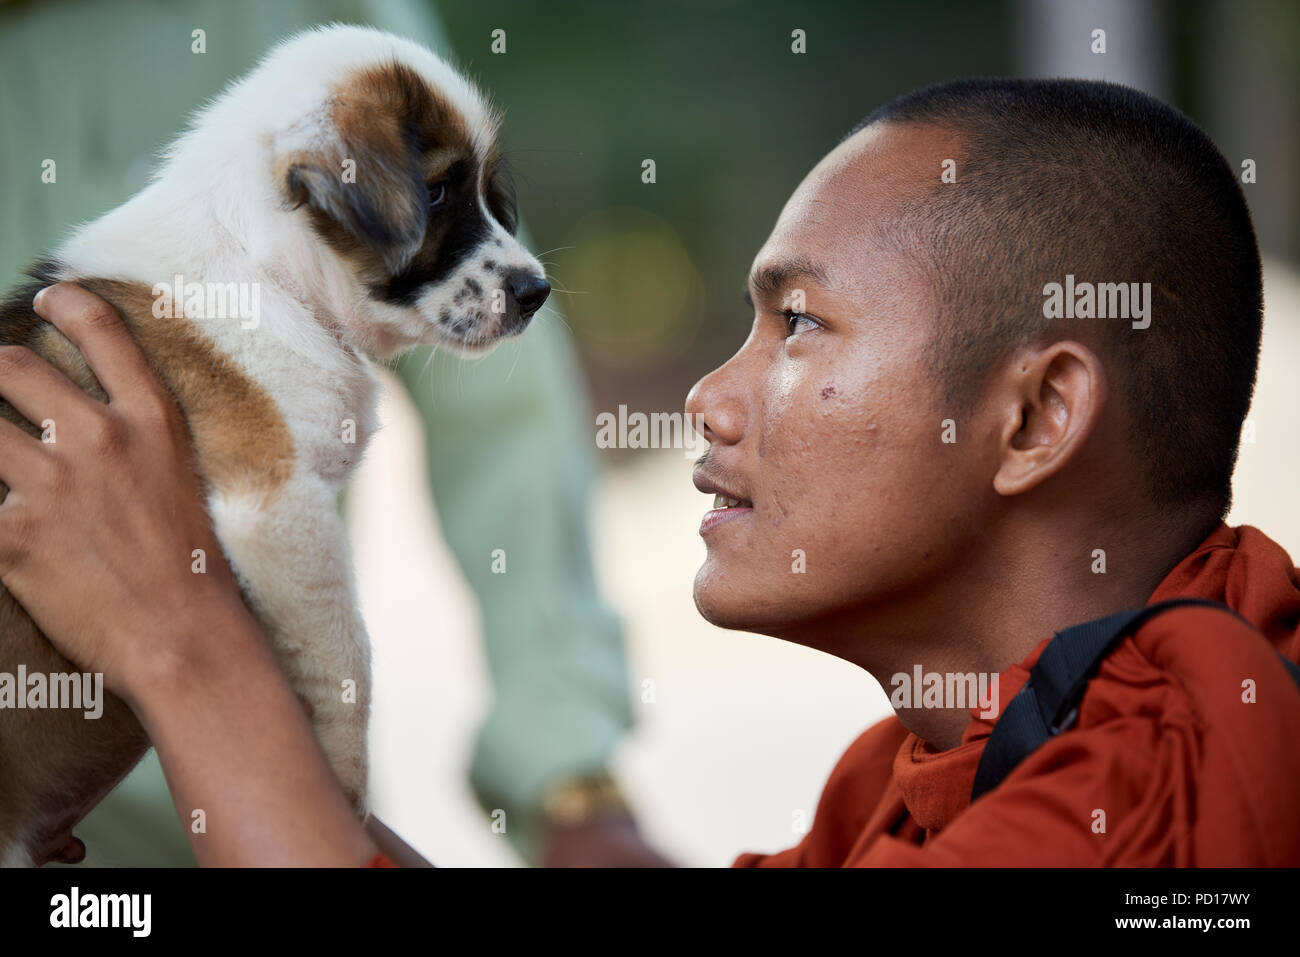 A smilling young Buddhist monk plays with a two-month old puppy in the monastery where he lives. In Siem Reap, Cambodia. - Stock Image